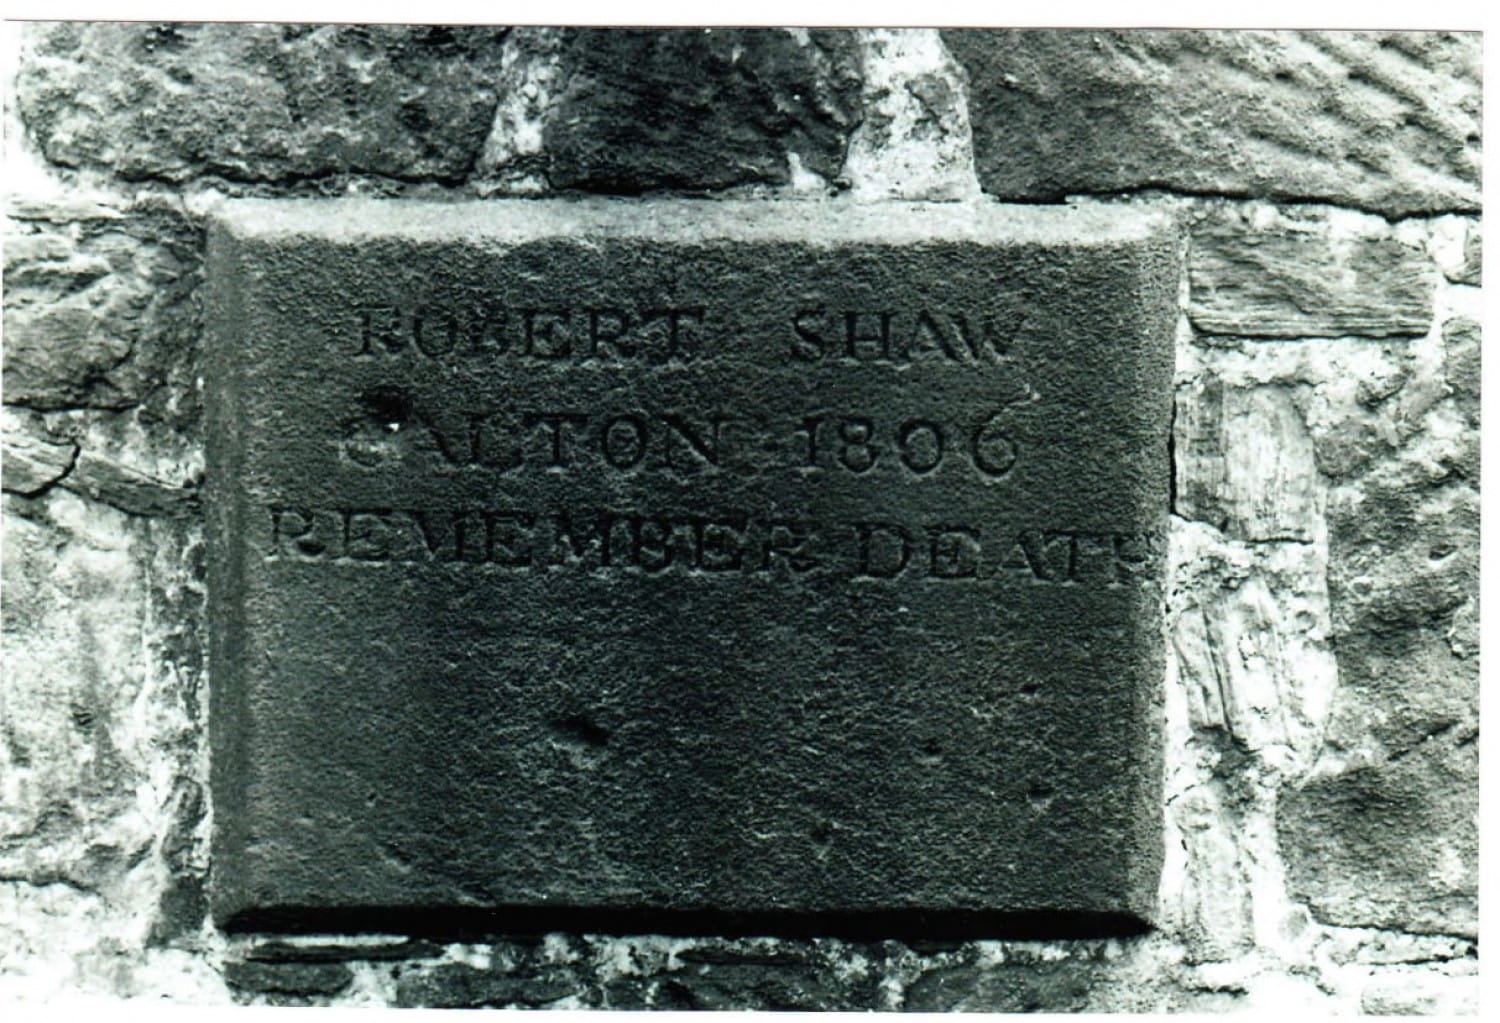 Wall plaque, Calton Burial Ground, Abercromby Street .